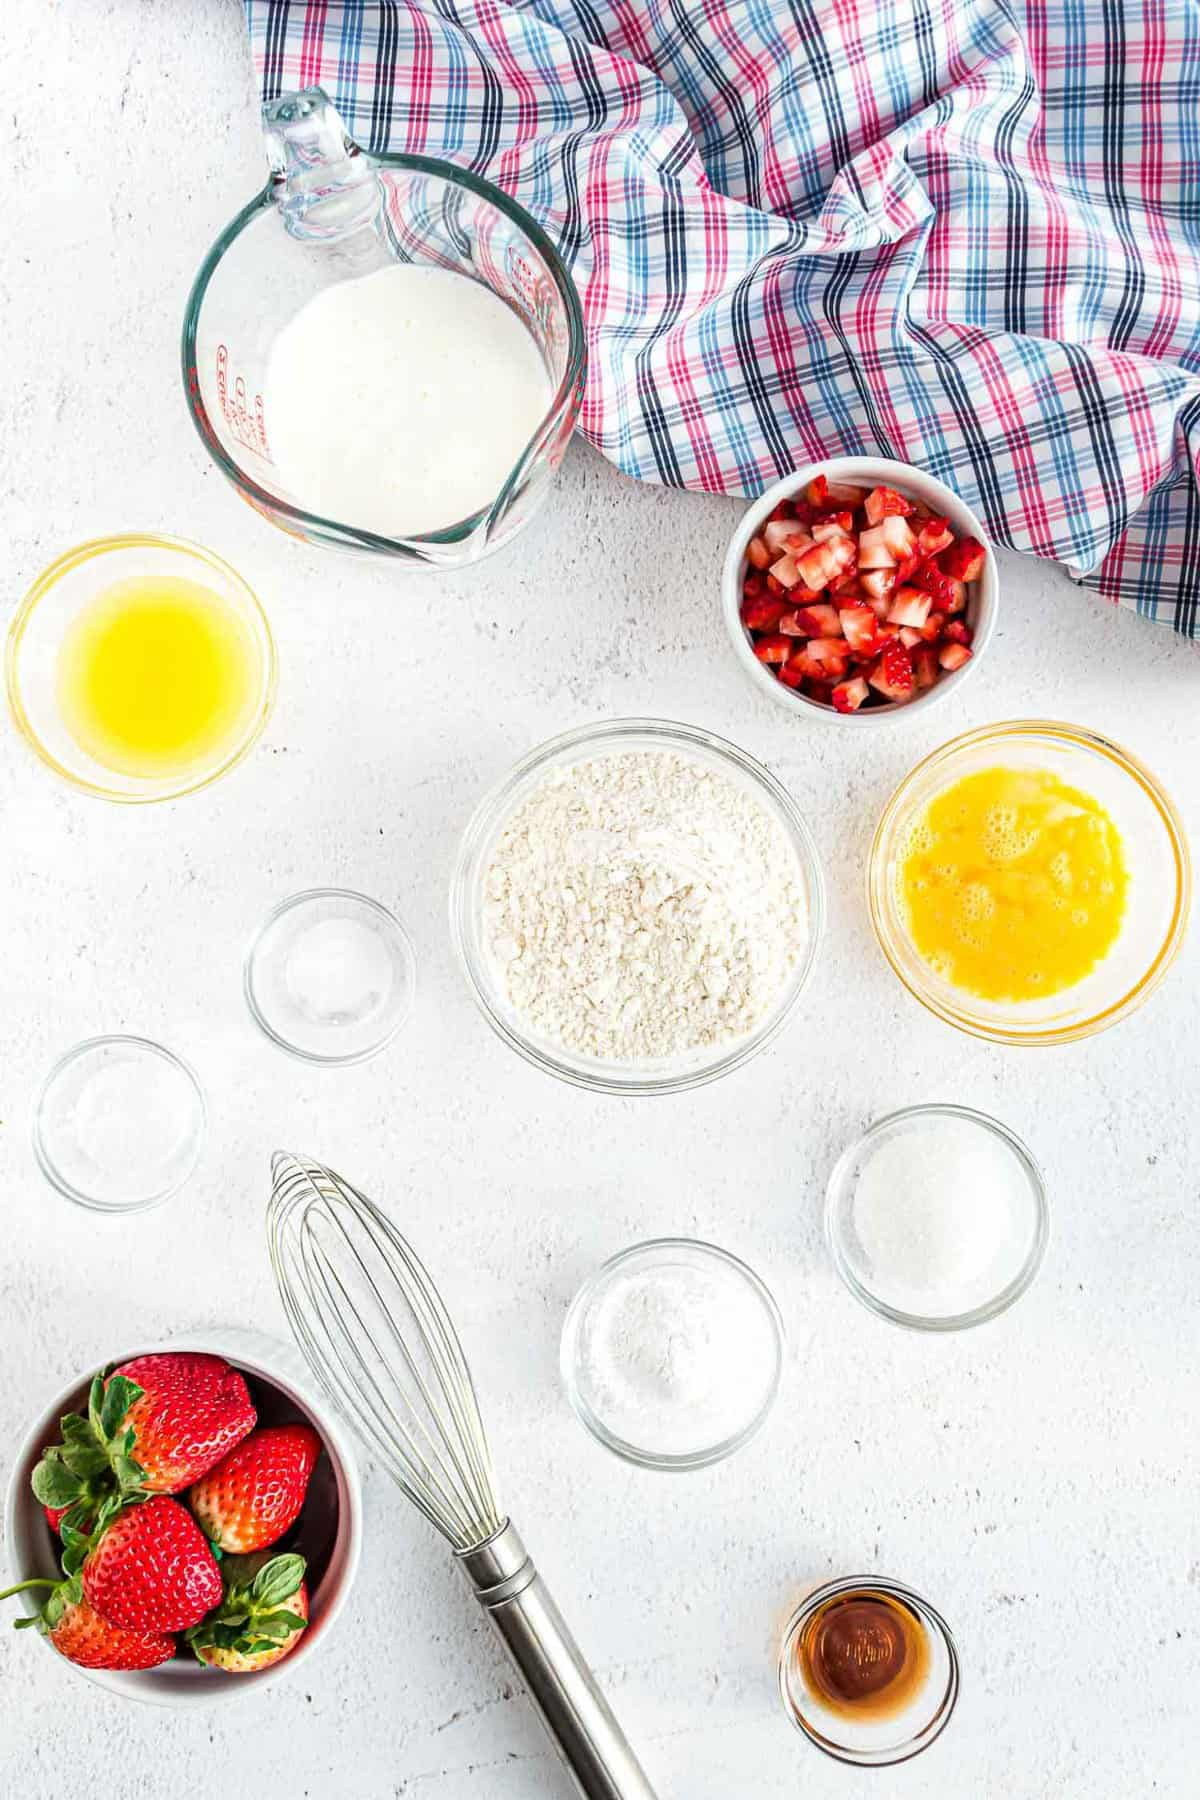 Overhead view of ingredients in bowls: strawberries, flour, butter, vanilla, and more.